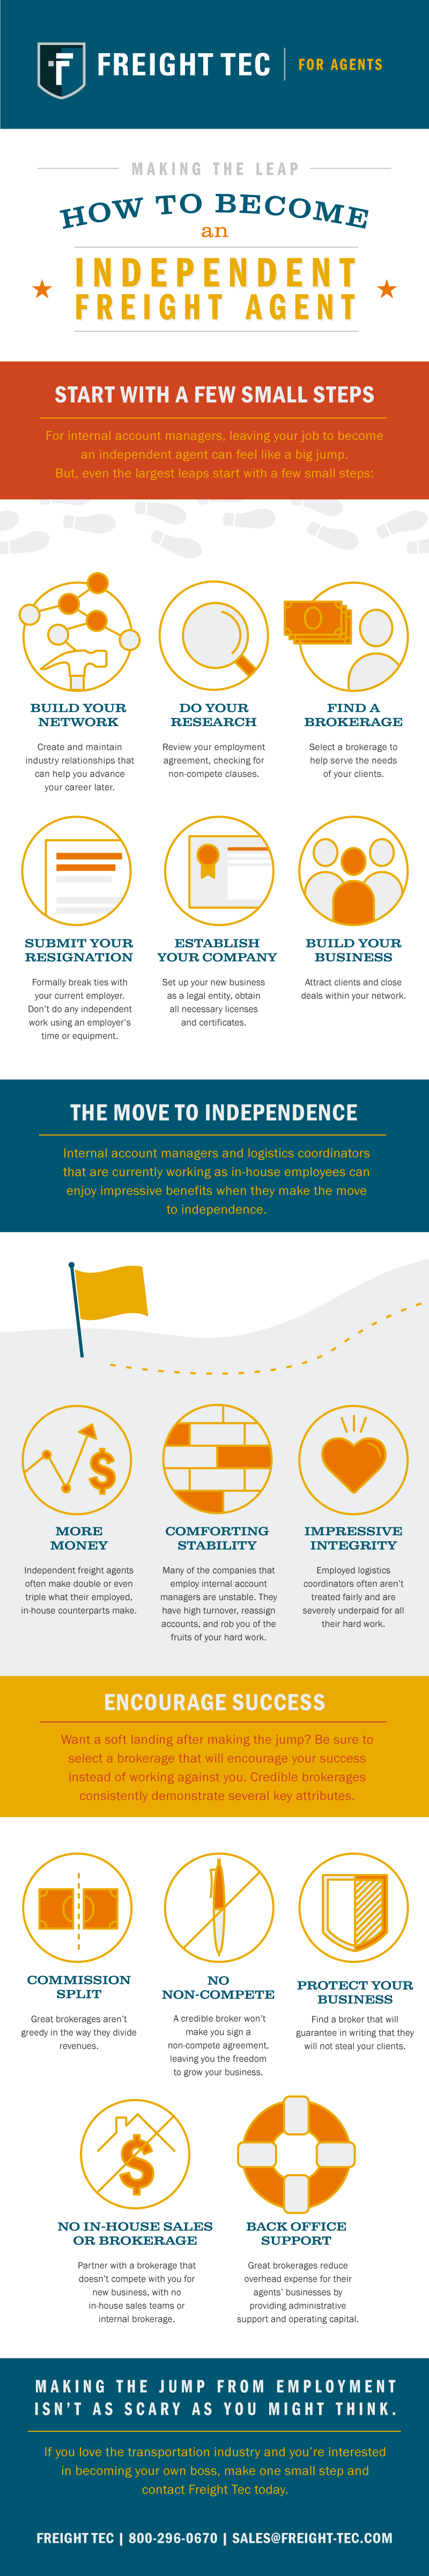 FTC_infographic_how-to-become-independent-agent (1)